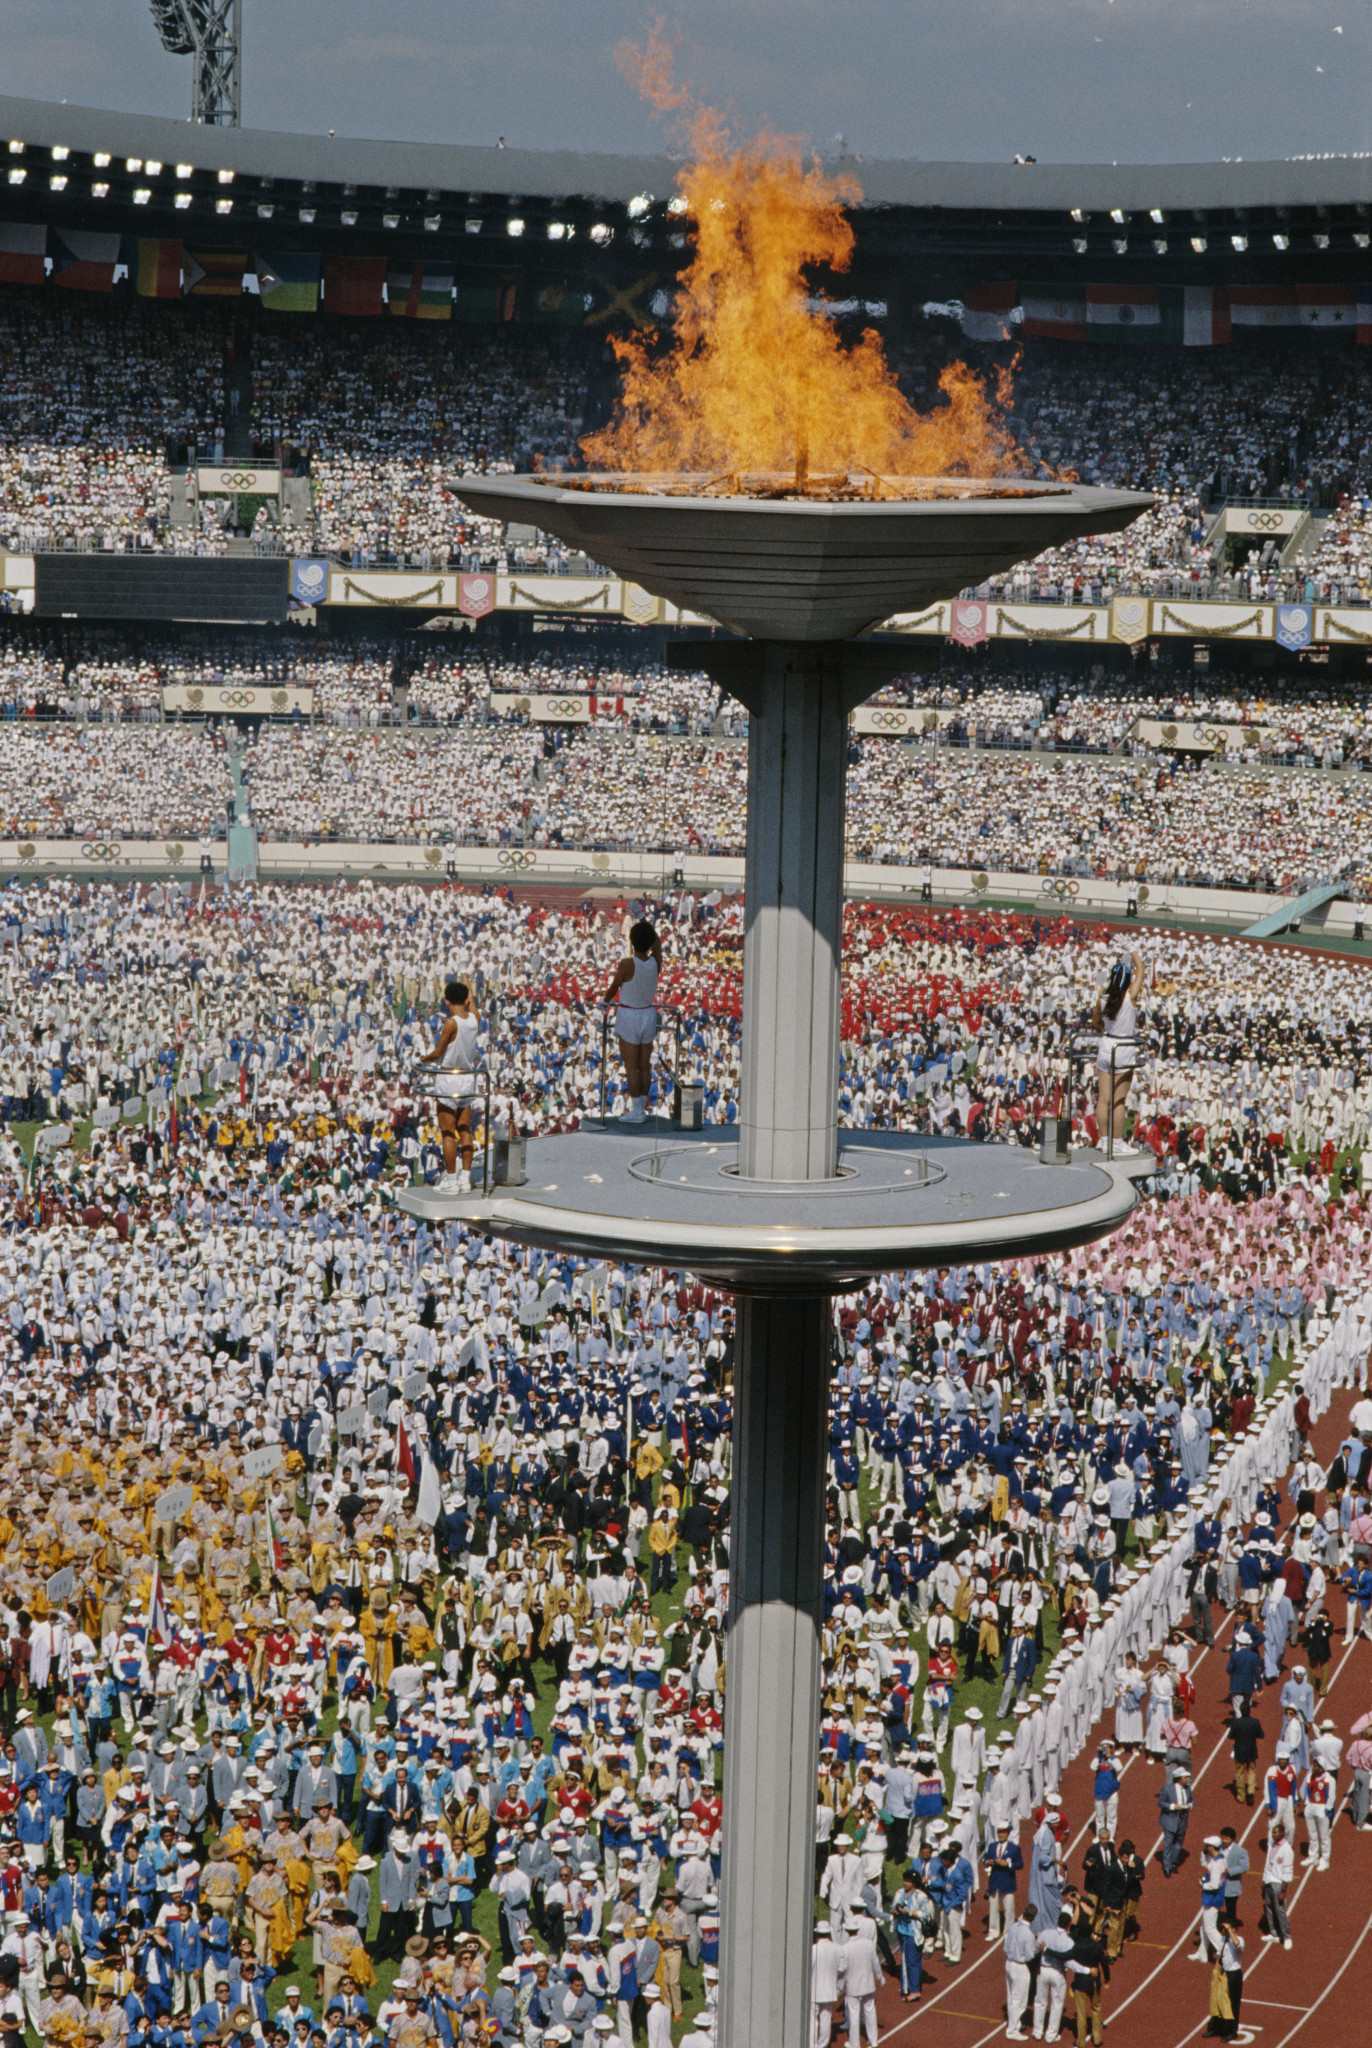 Sohn Kee-chung spoke oif being visibly moved by the Opening Ceremony of the 1988 Summer Olympics in Seoul, South Korea ©Getty Images